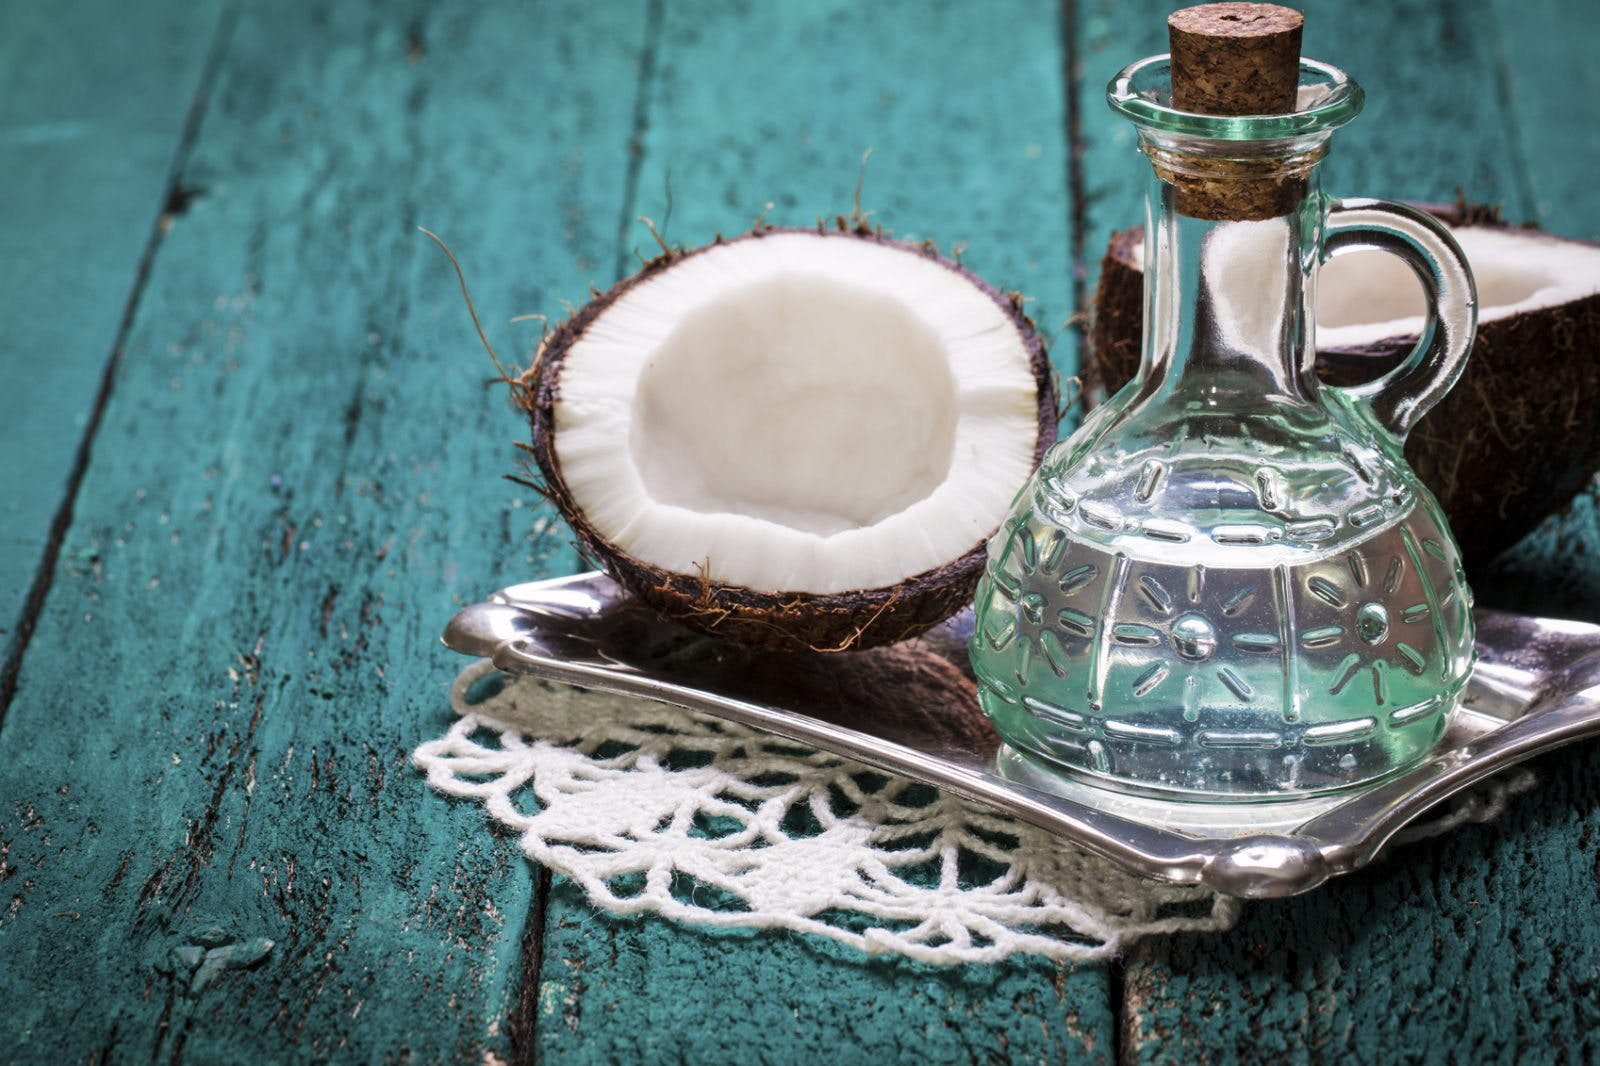 Coconut oil is excellent for getting into ketosis